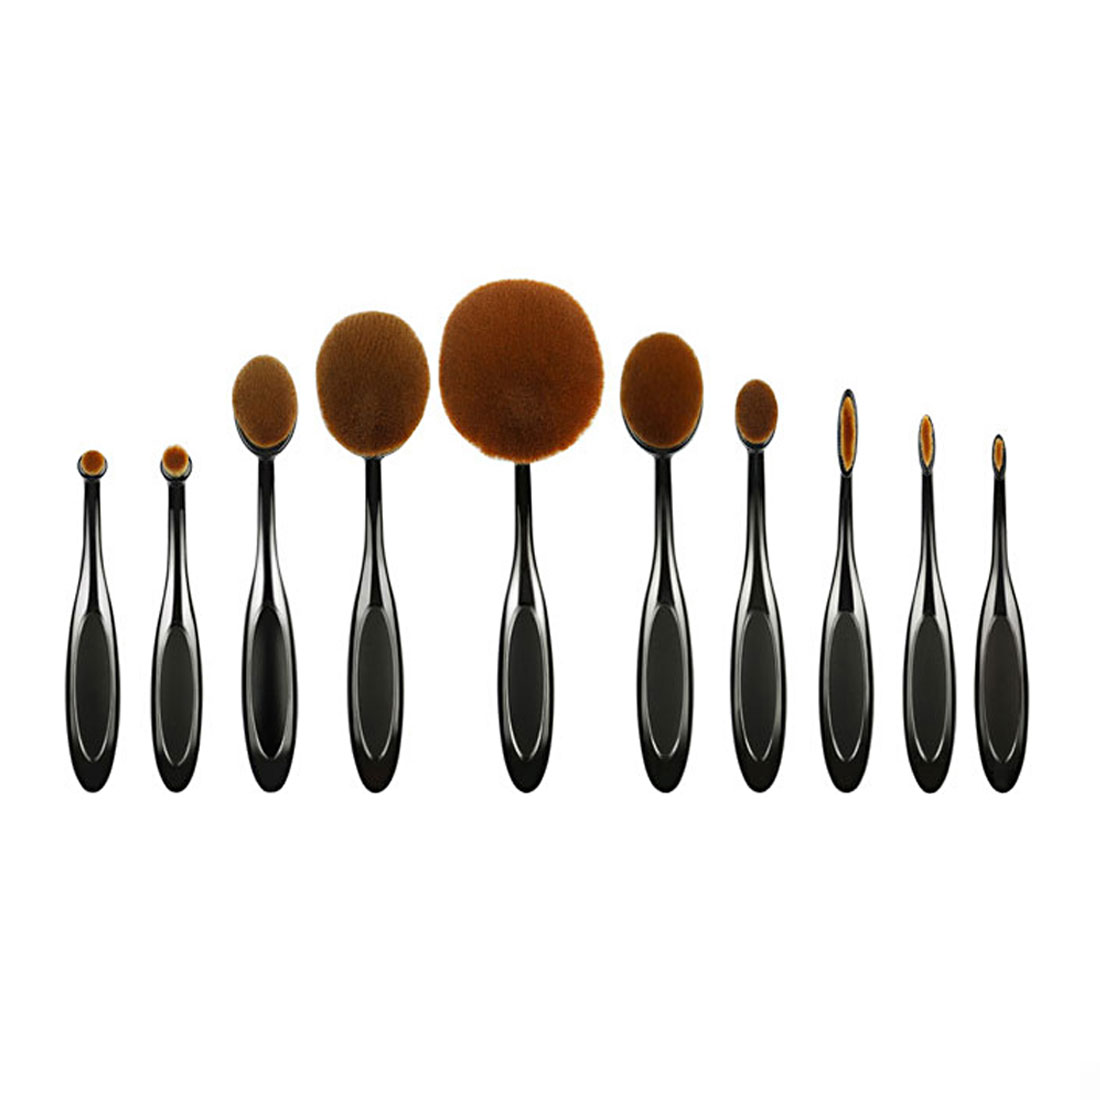 10 Pcs Ladies Professional Cosmetic Makeup Toiletry Toothbrush Blush Brushes Set Eyeshadow Powder Tools